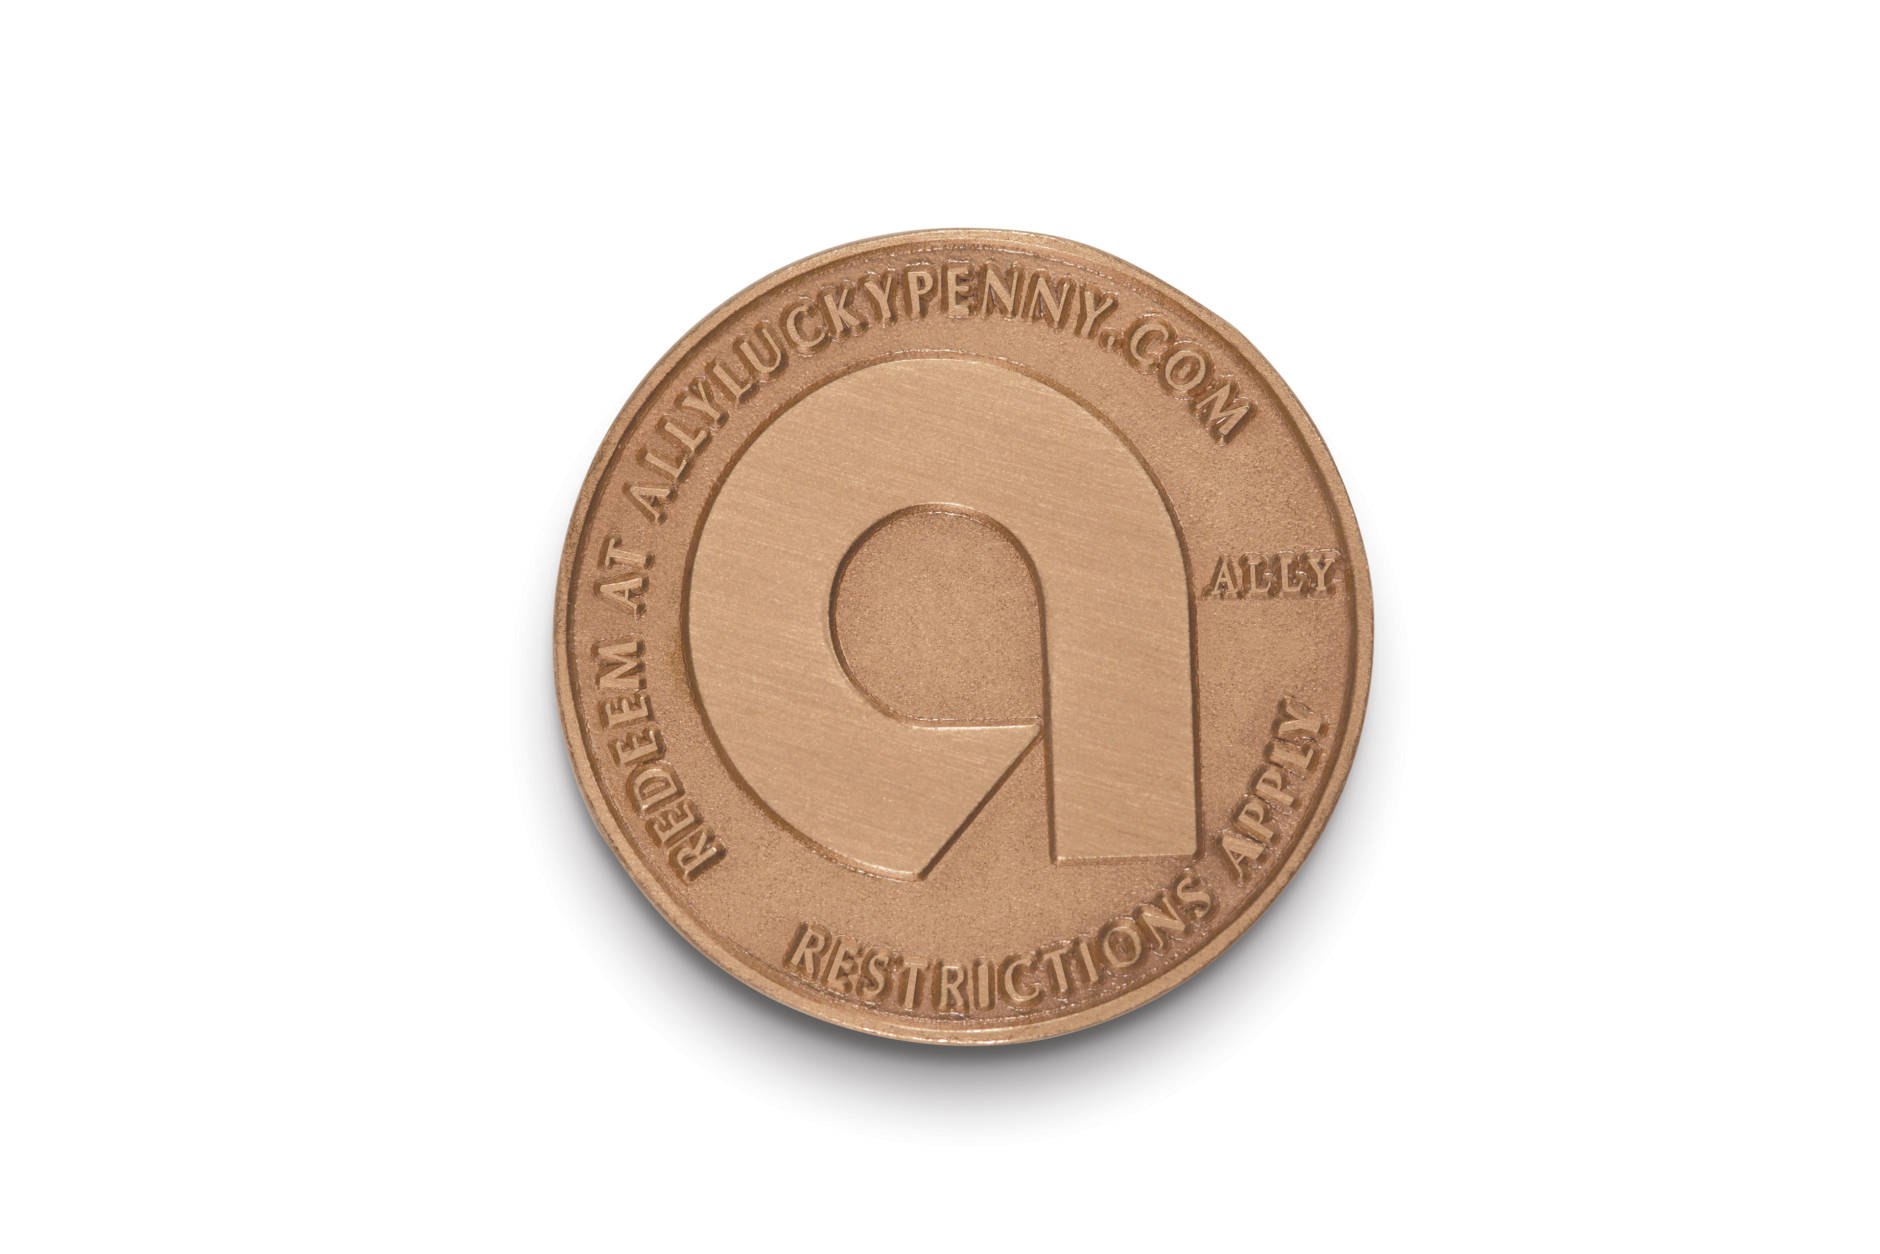 Here's what the other side of Ally's Lucky Penny looks like. (Courtesy Ally Bank)